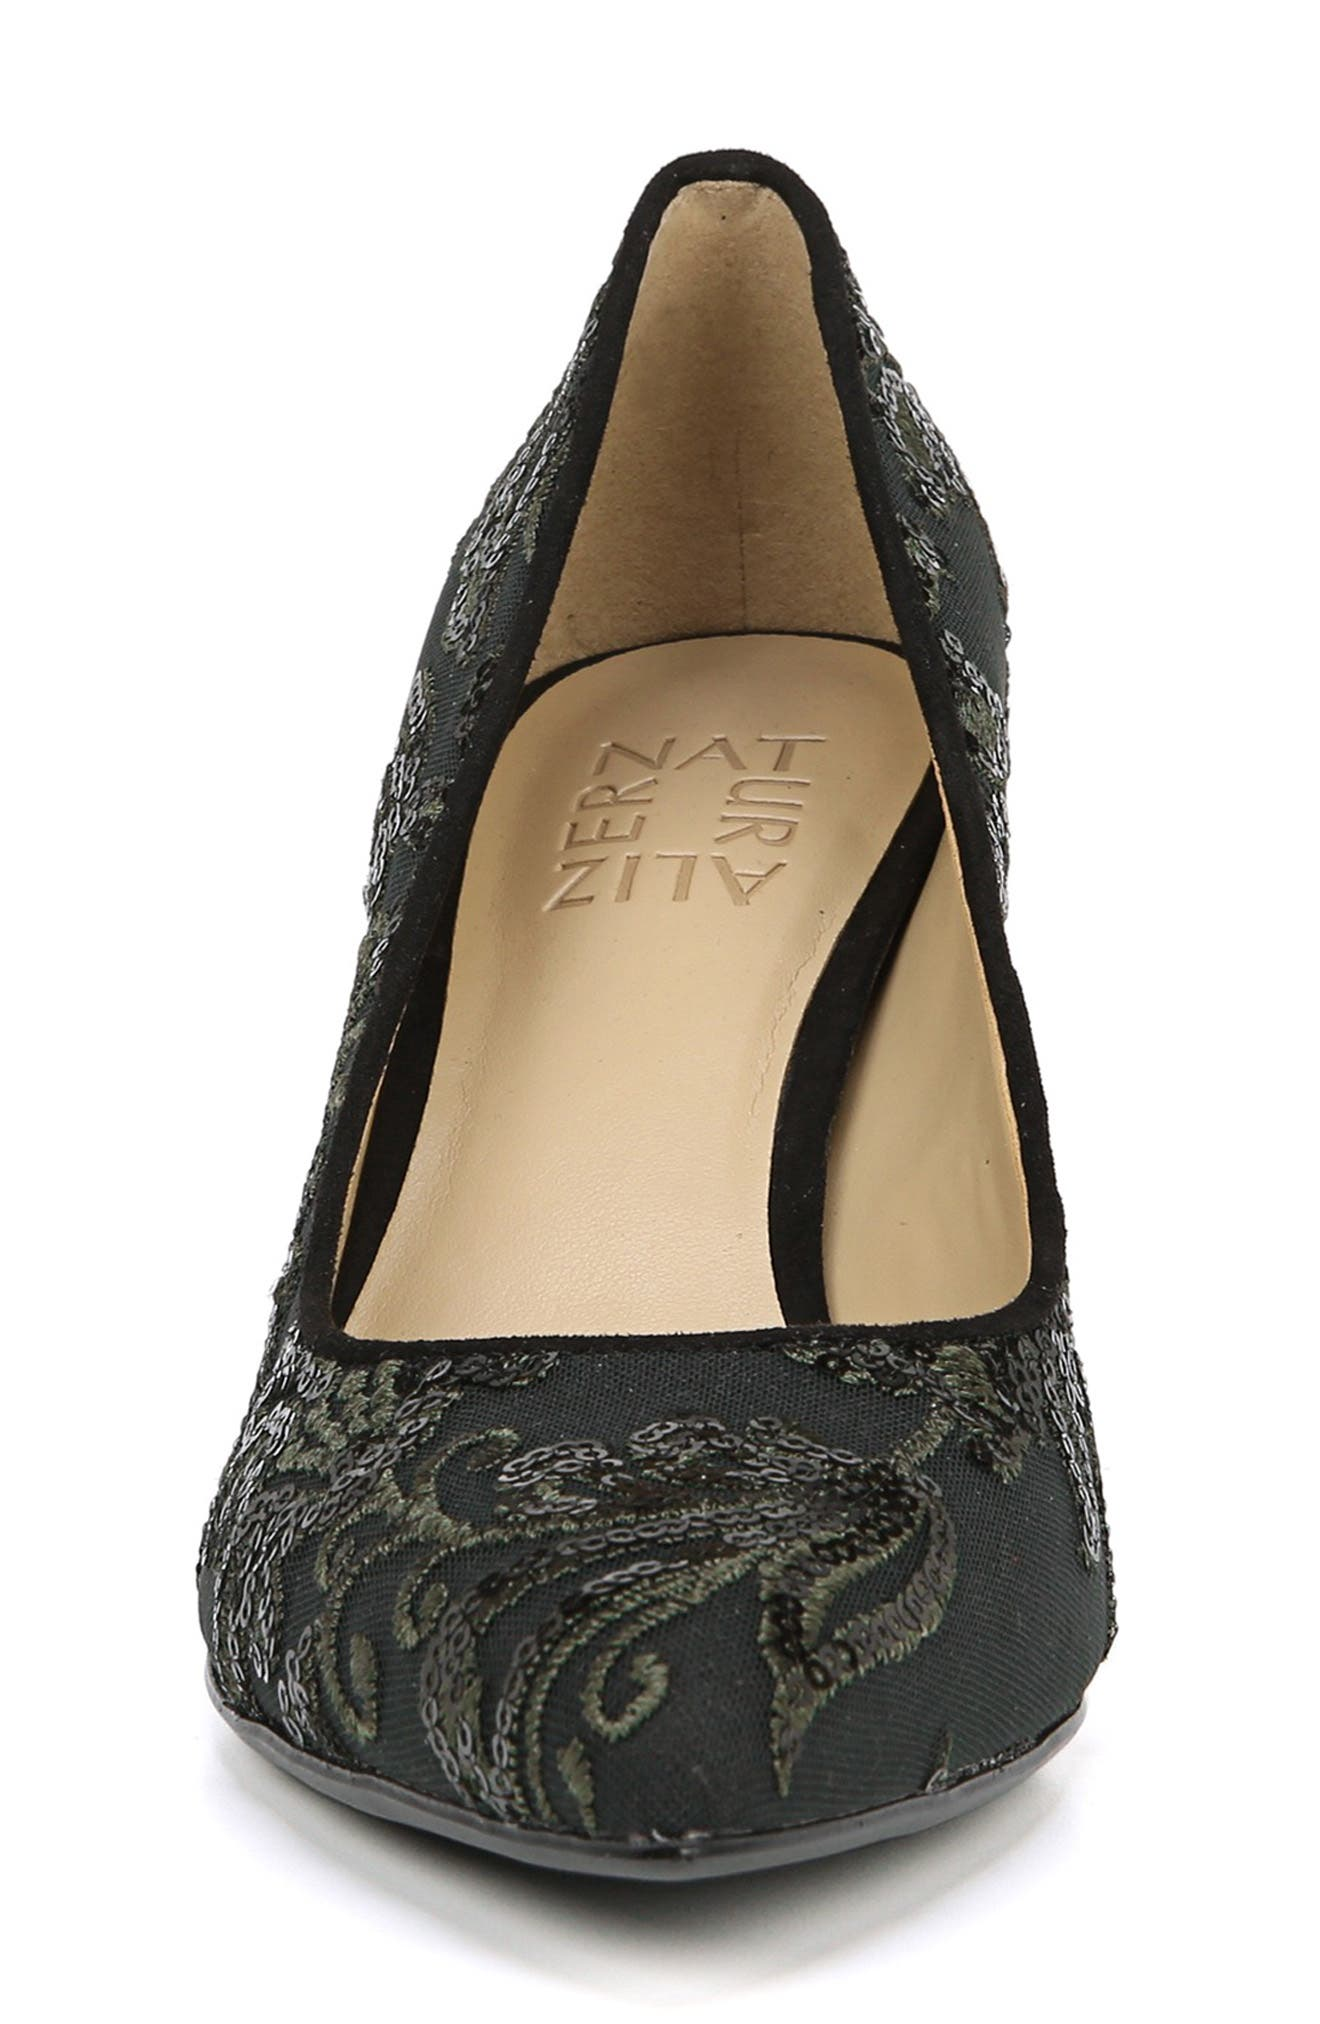 NATURALIZER, Natalie Pointy Toe Pump, Alternate thumbnail 4, color, FERN GREEN EMBROIDERED